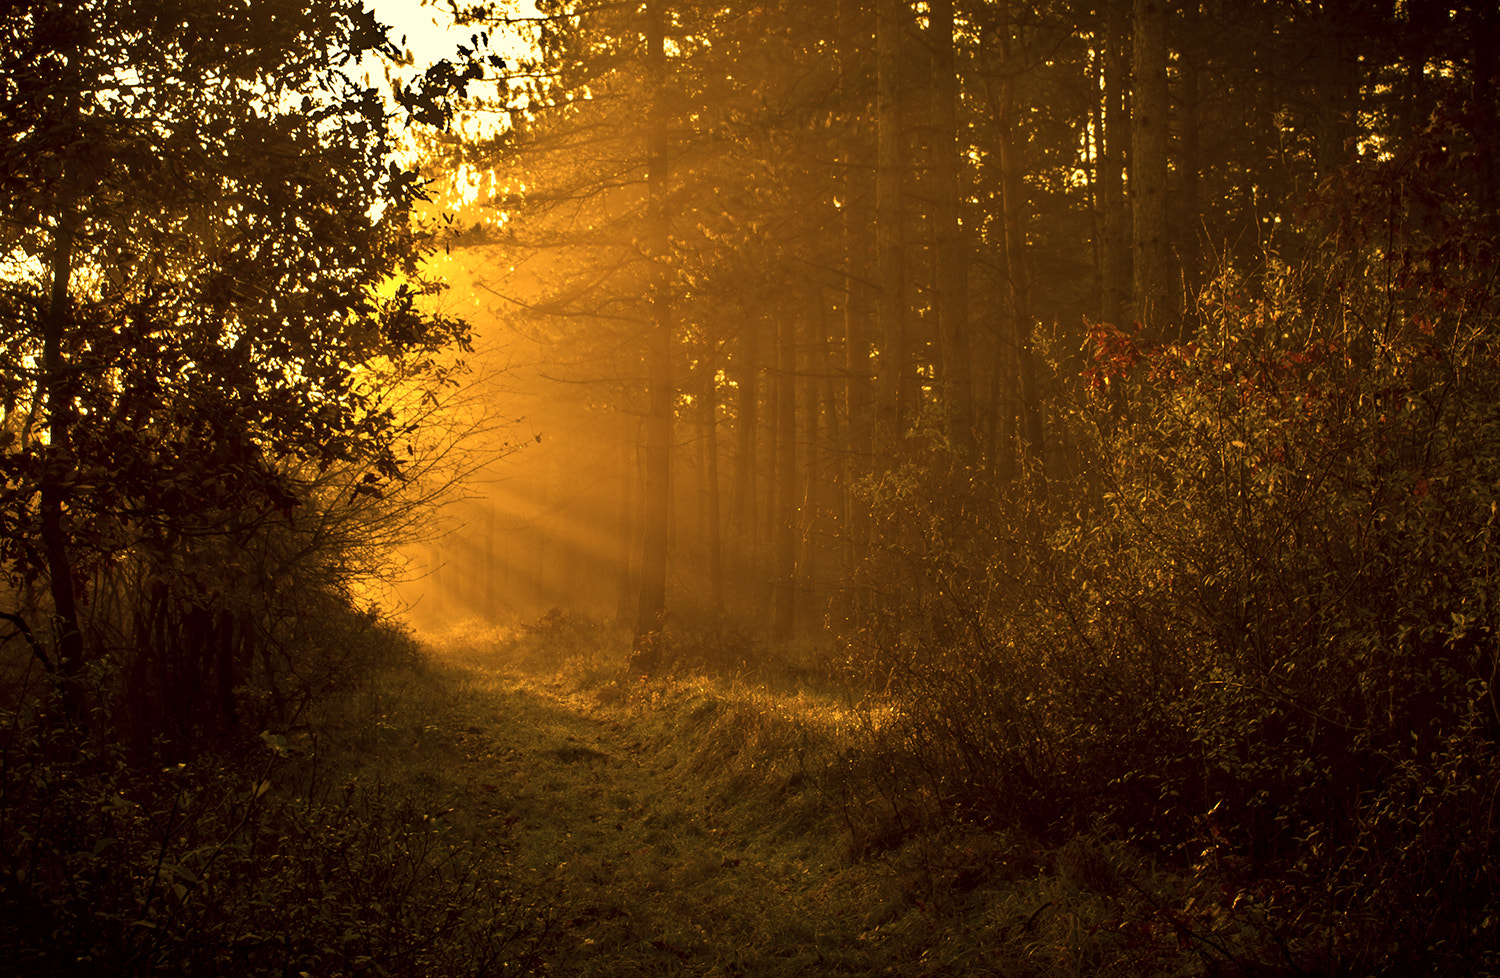 Photograph due to the sun by Andy 58 on 500px